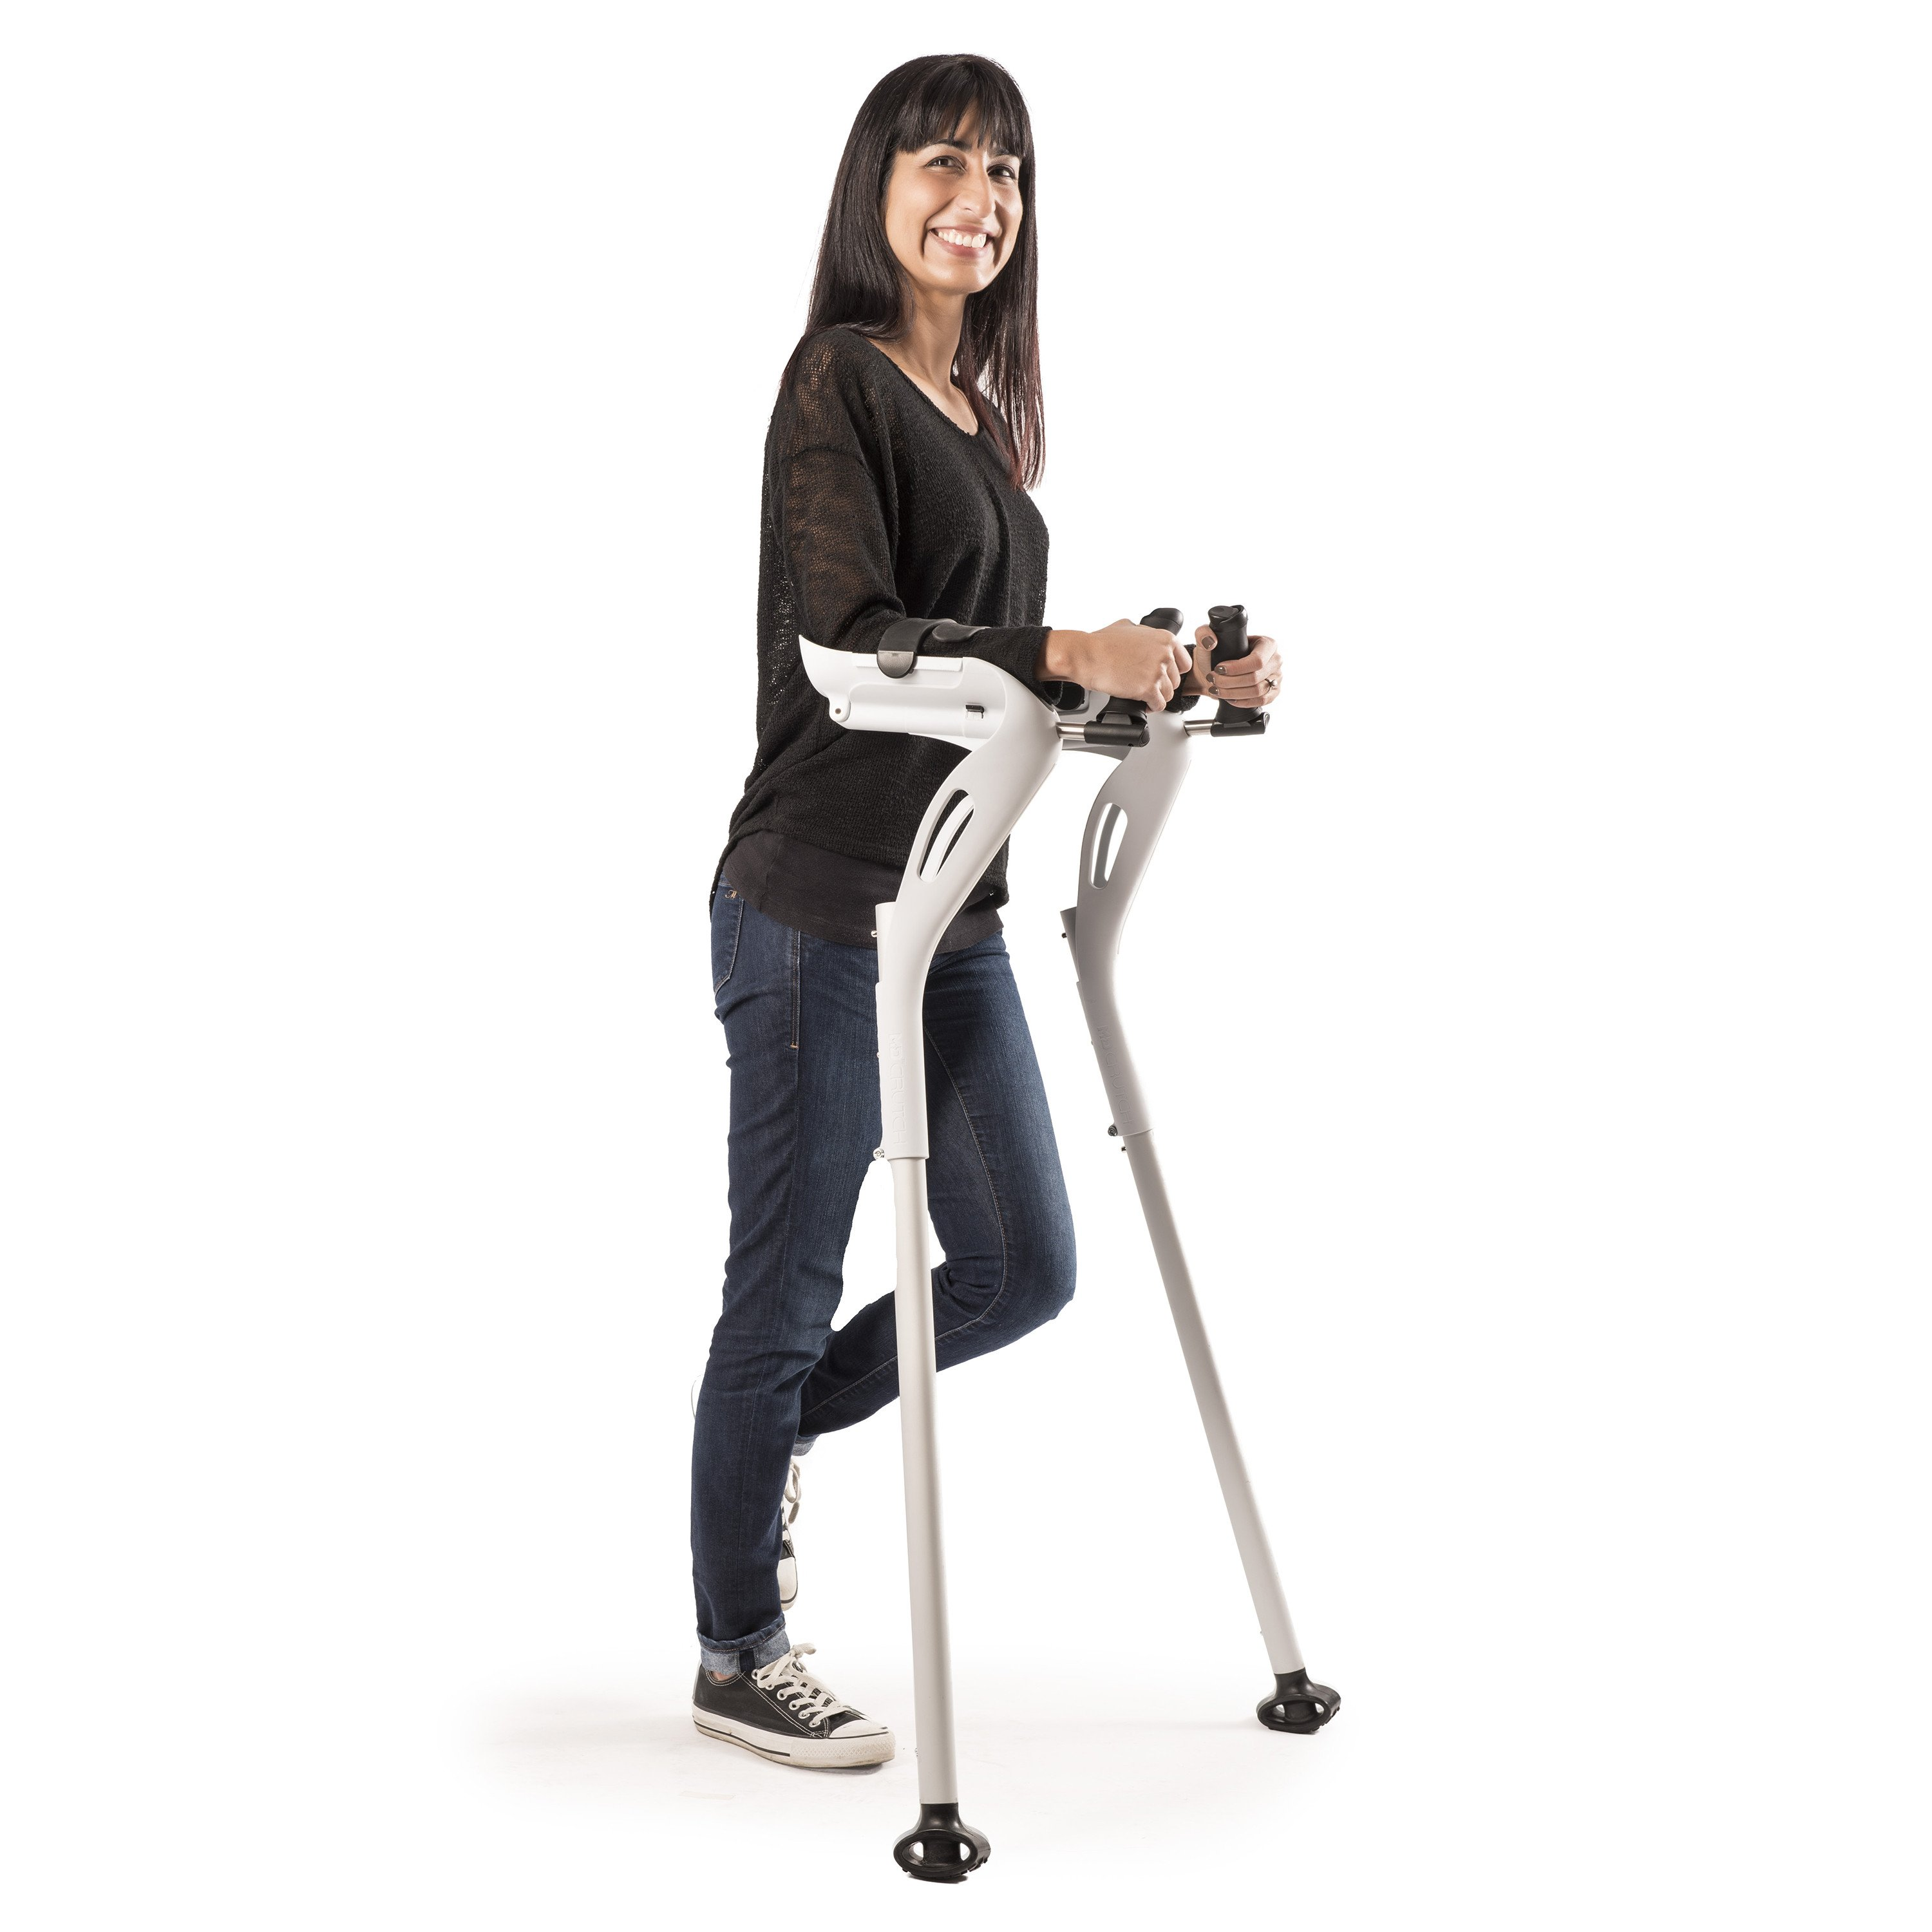 Mobility+Designed | More comfort and less pain with the M+D Crutch